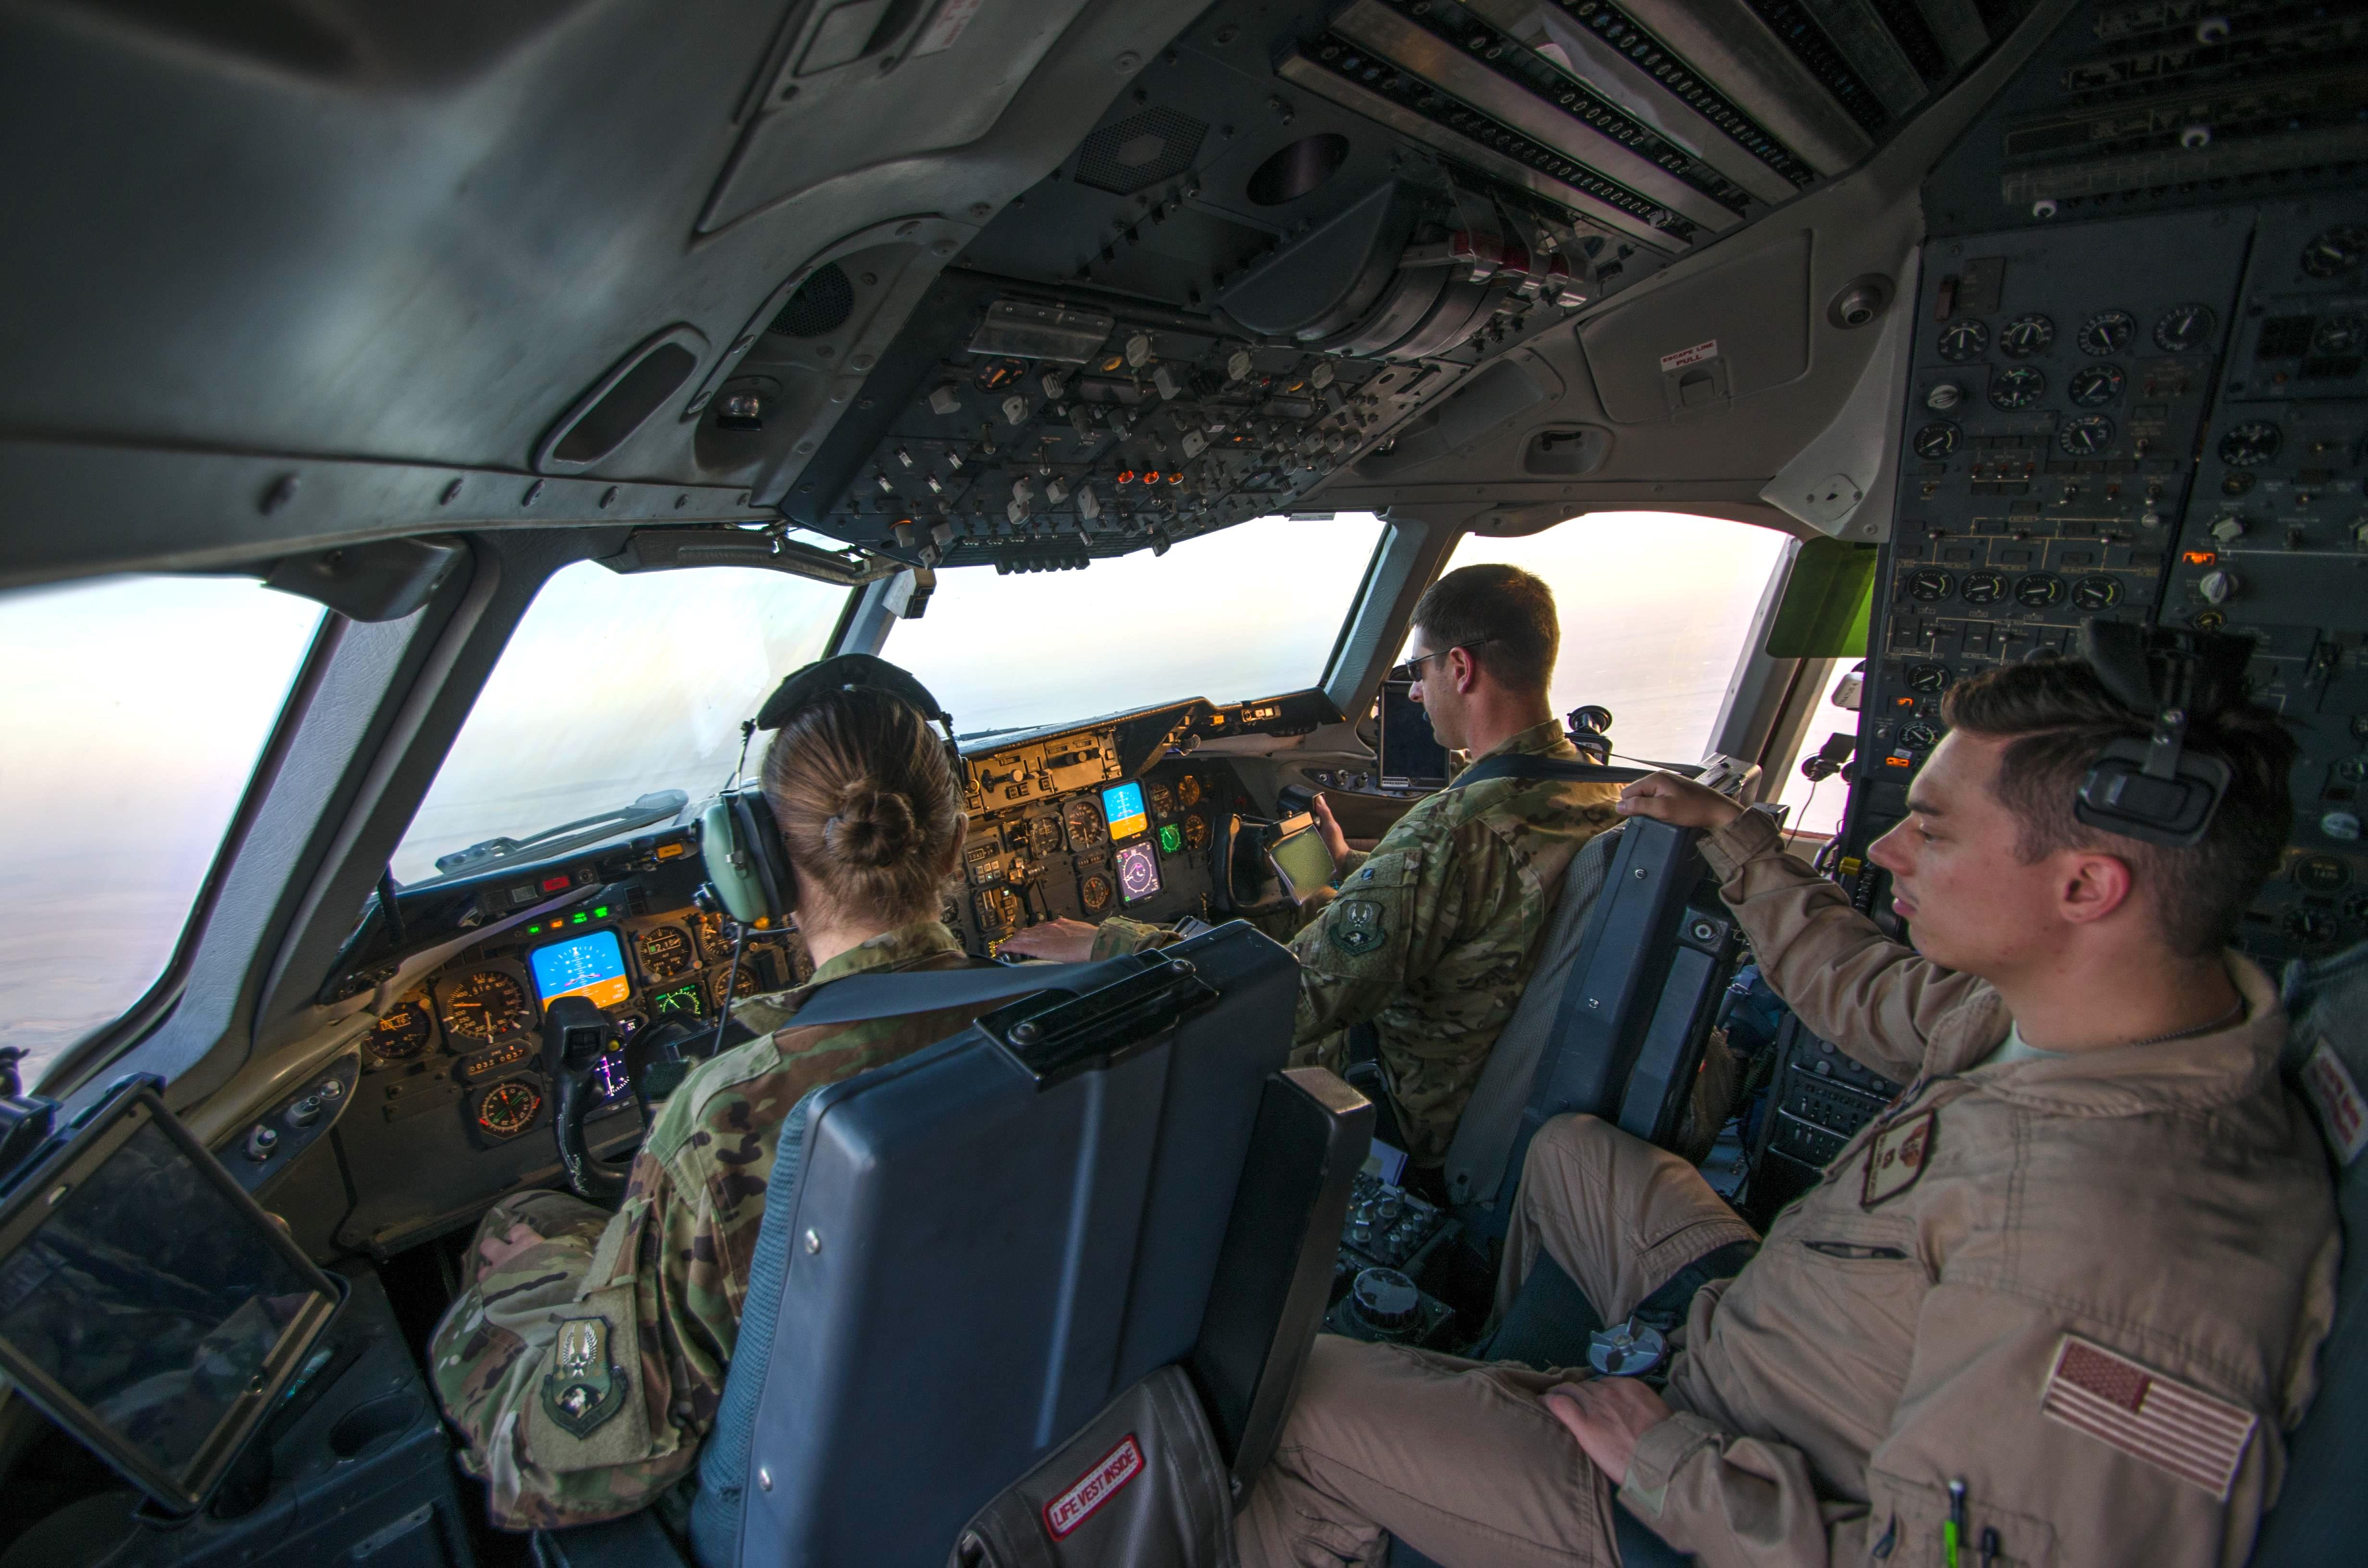 908 EARS refuels in support of new offensive campaign